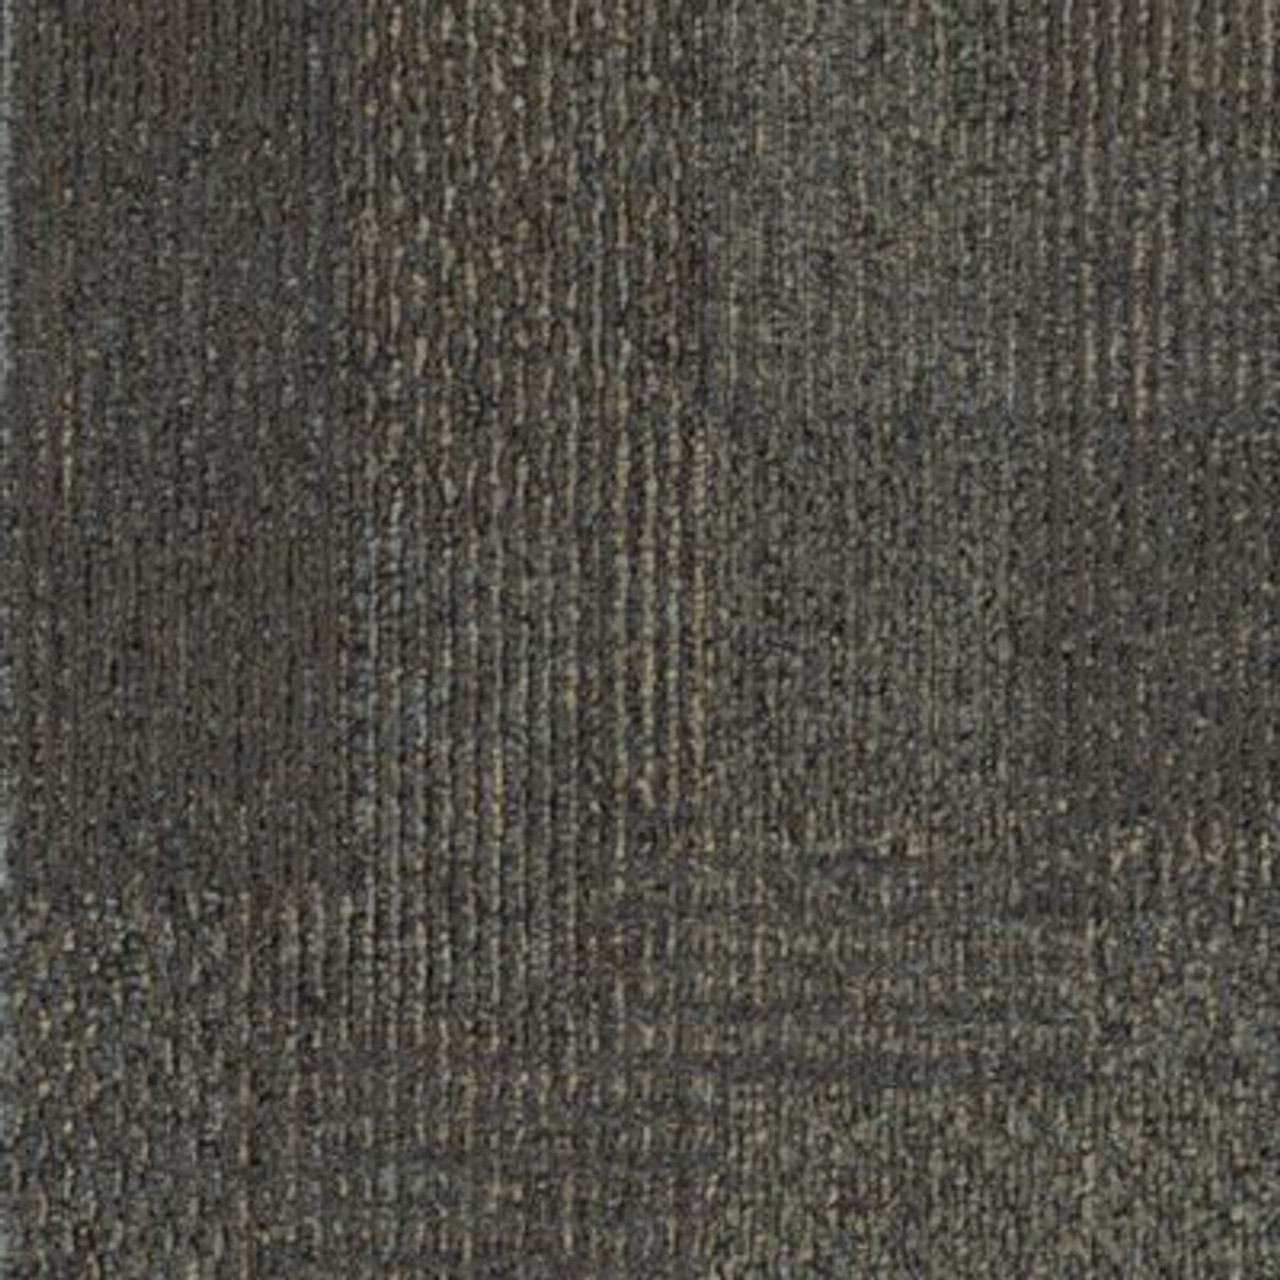 Image of: Mohawk Design Medley Night Shadow Carpet Tile Regal Floor Coverings